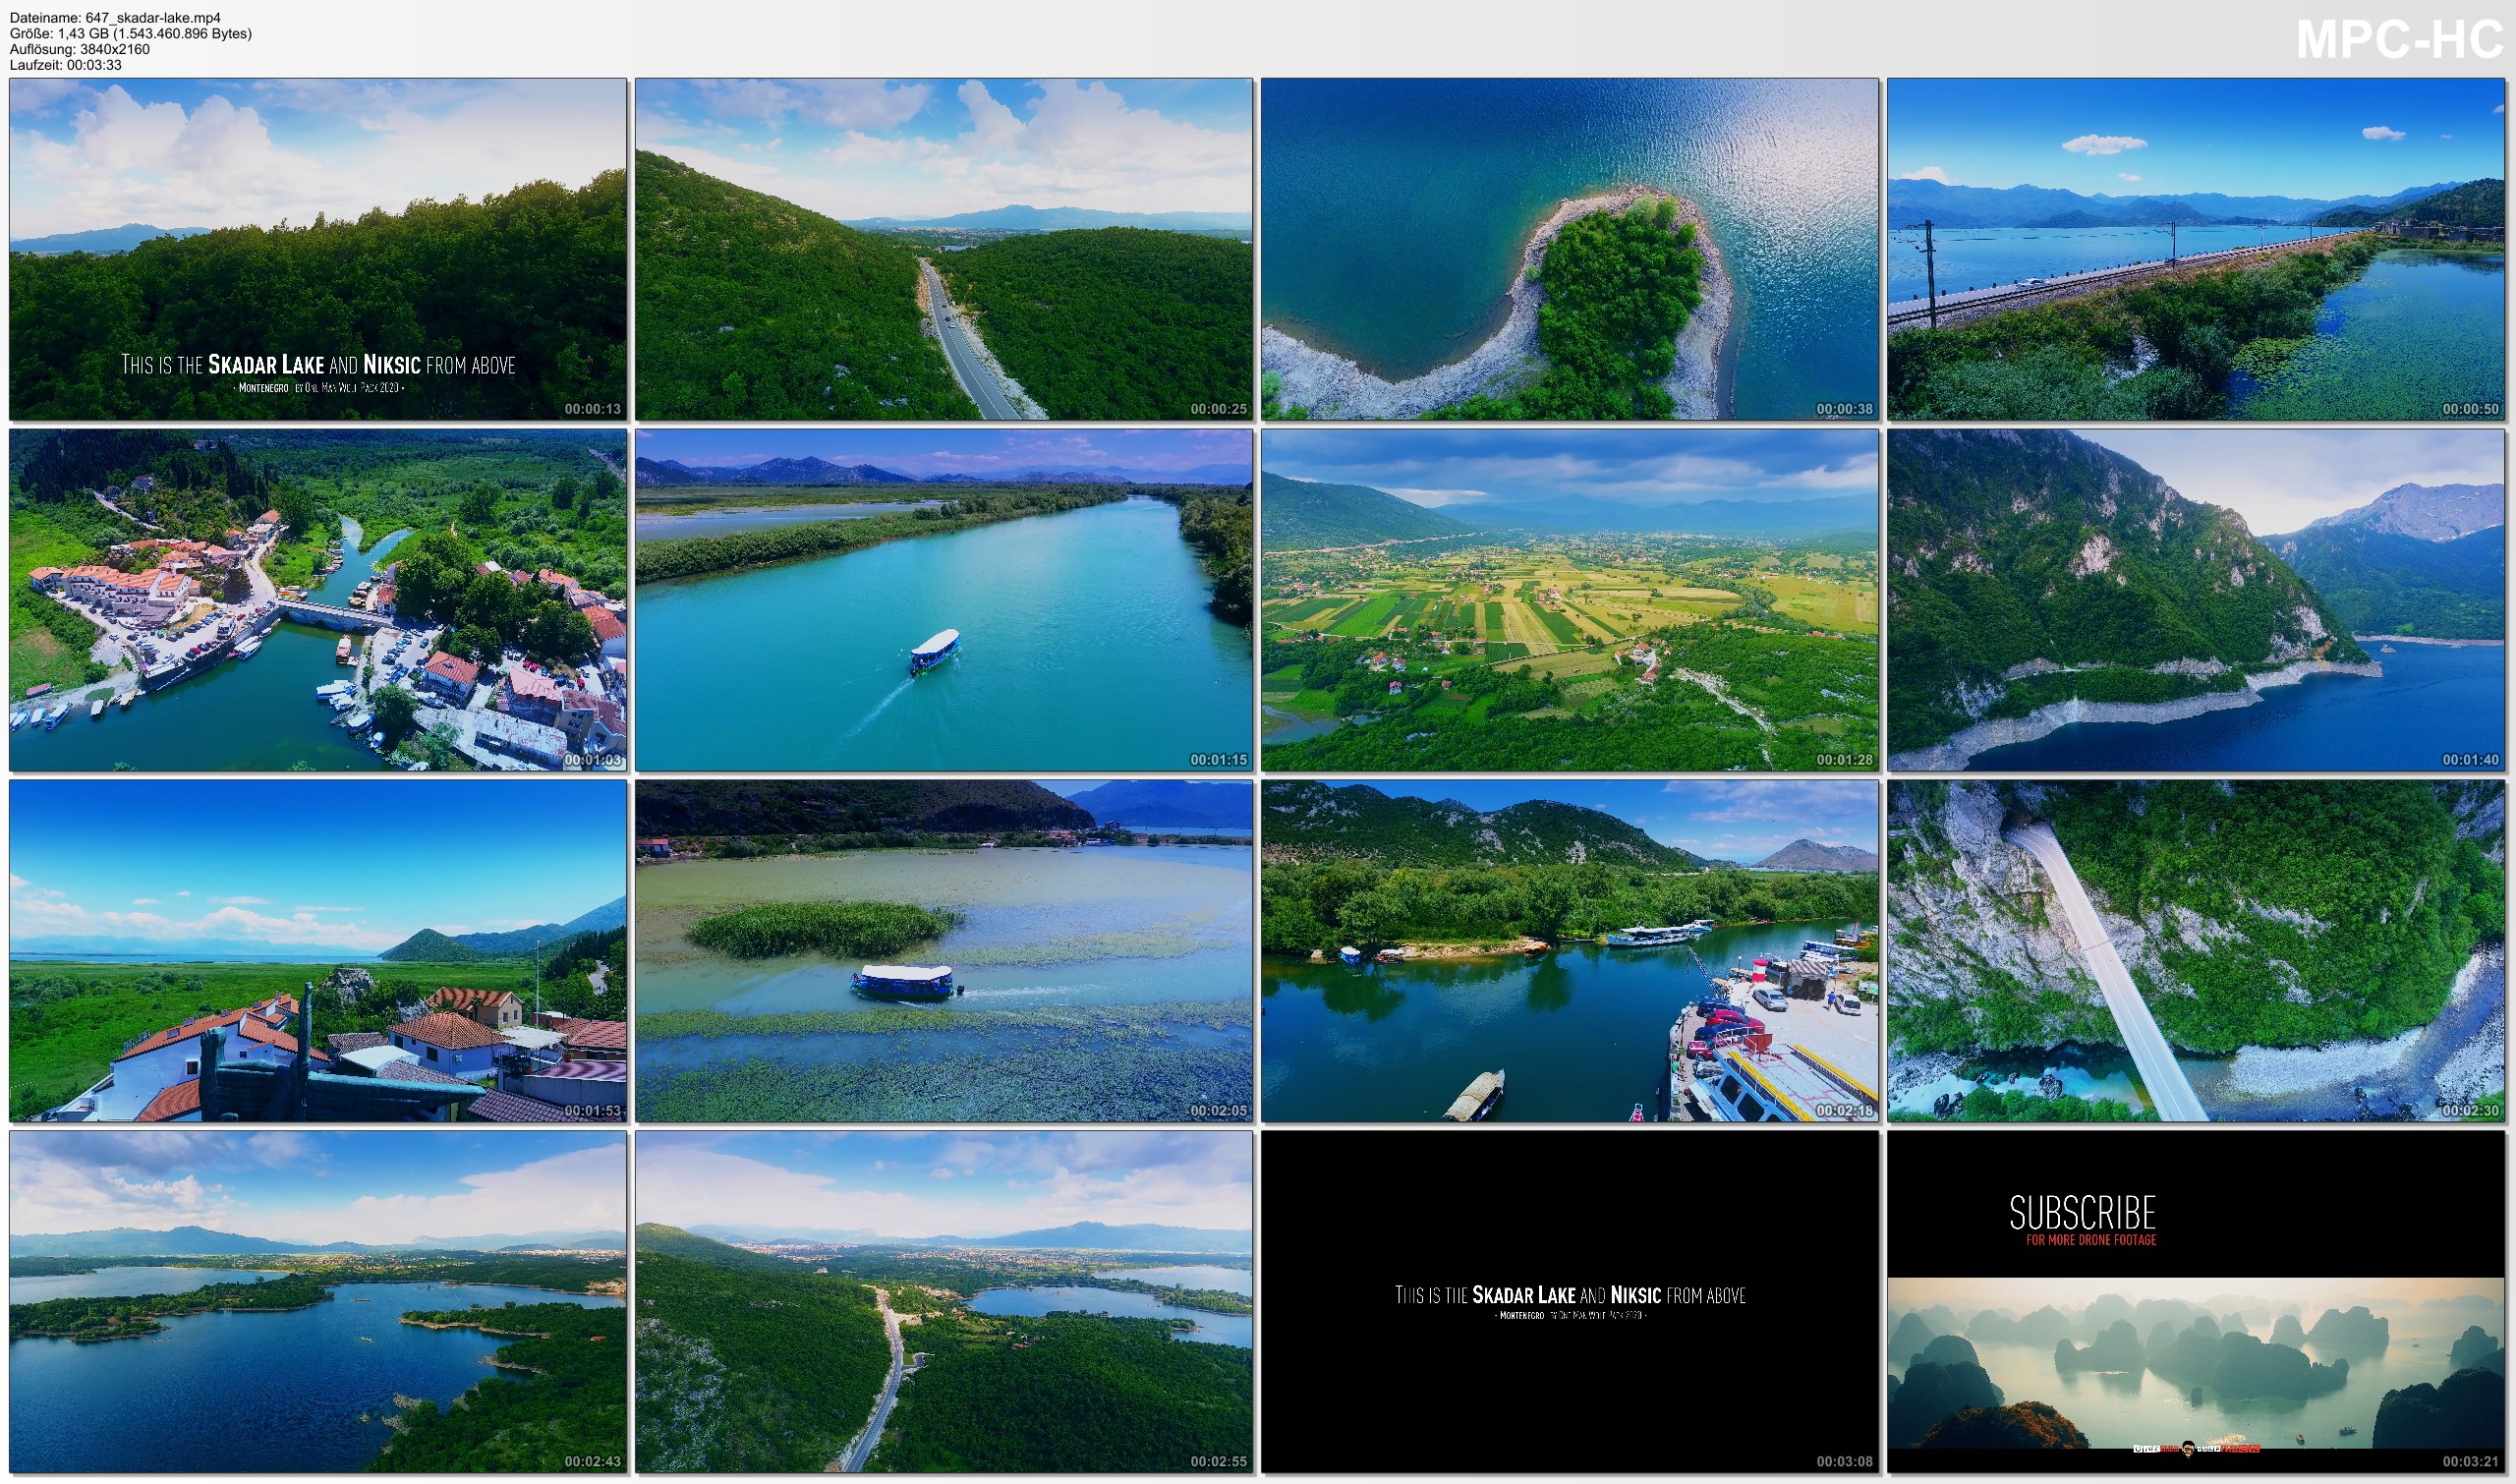 Drone Pictures from Video 【4K】Lake Skadar from Above - MONTENEGRO 2020 | Cinematic Wolf Aerial™ Drone Film